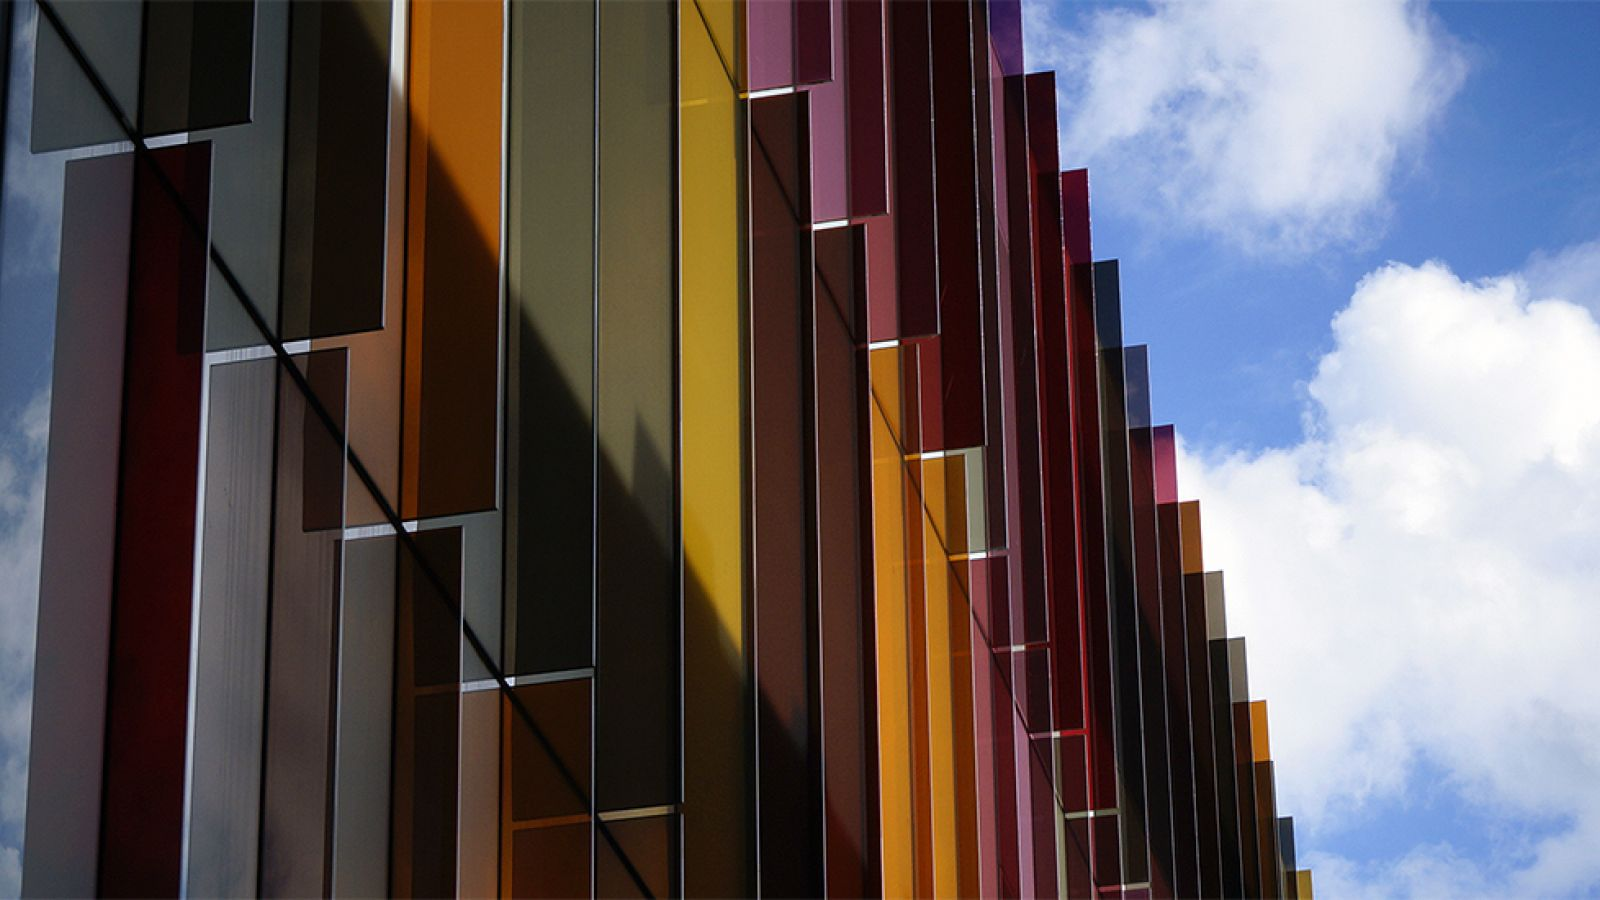 The Biochemistry building against a blue sky